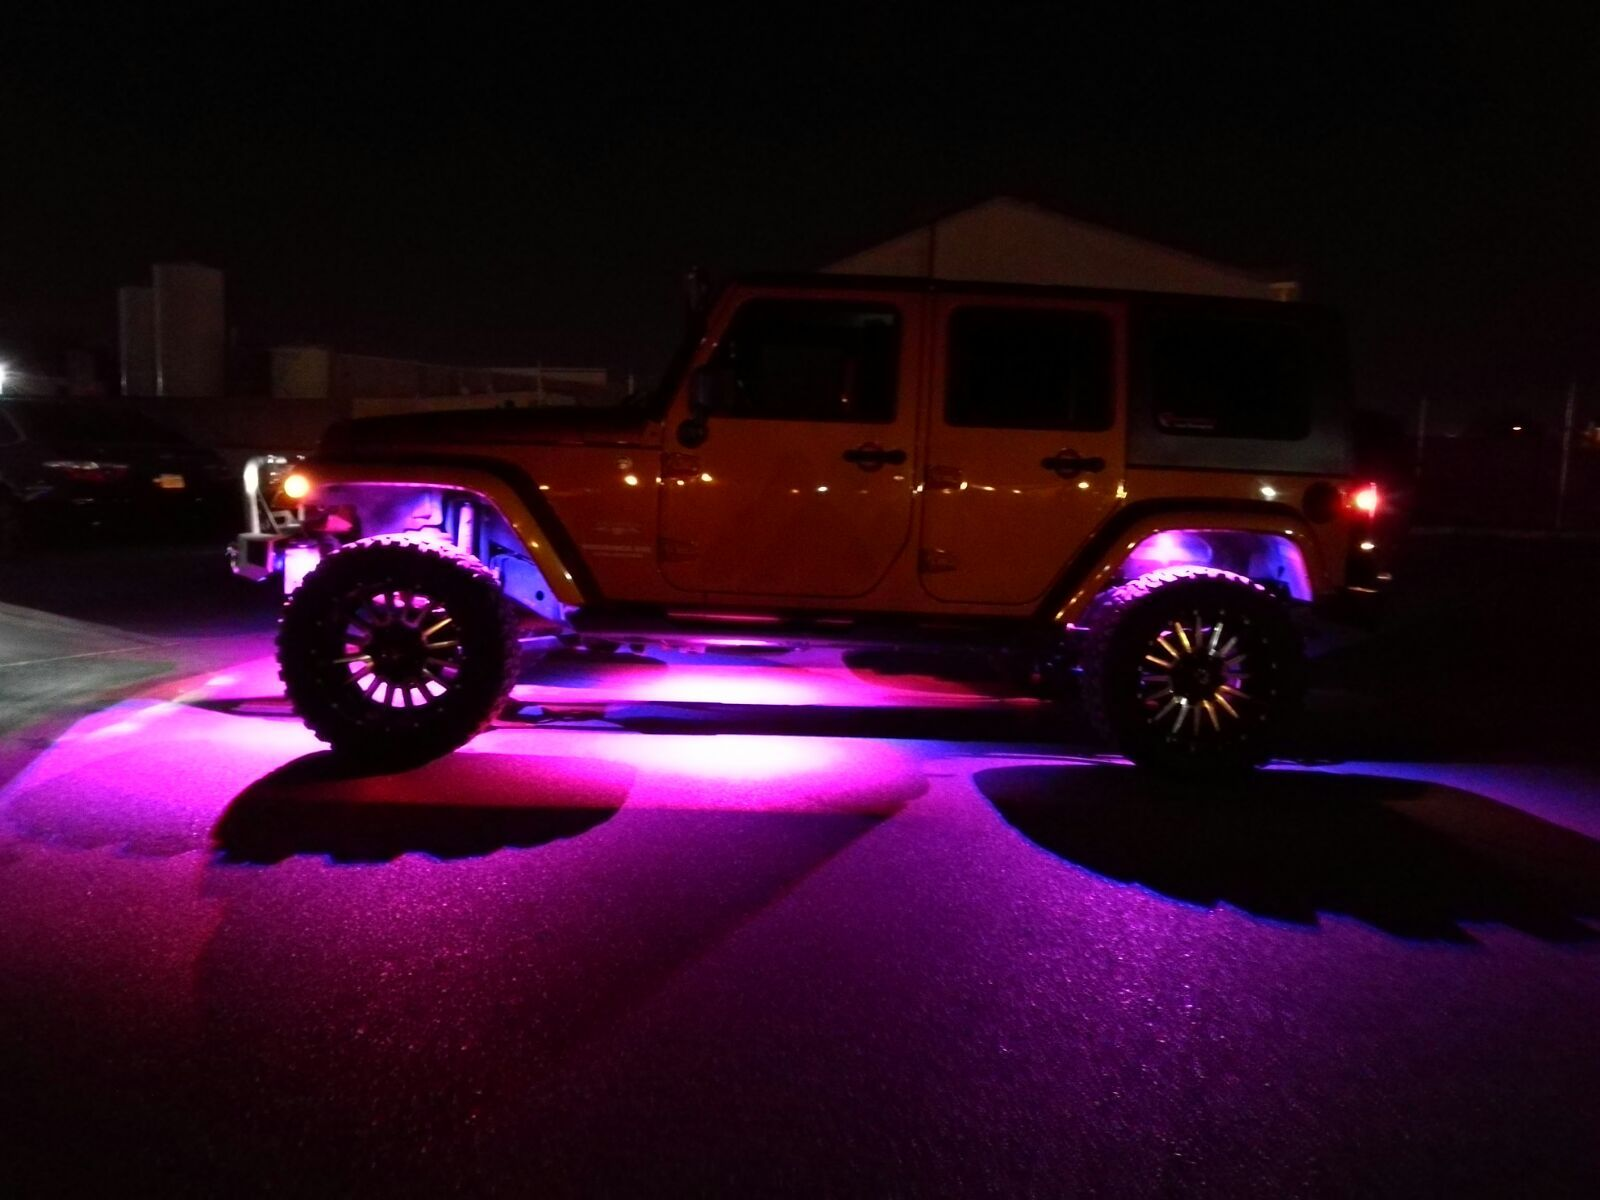 Pin By C Pot On Jeep Wranglers Jk 2007 2017 Jeep Wrangler Led Lights Jeep Accessories Jeep Lights